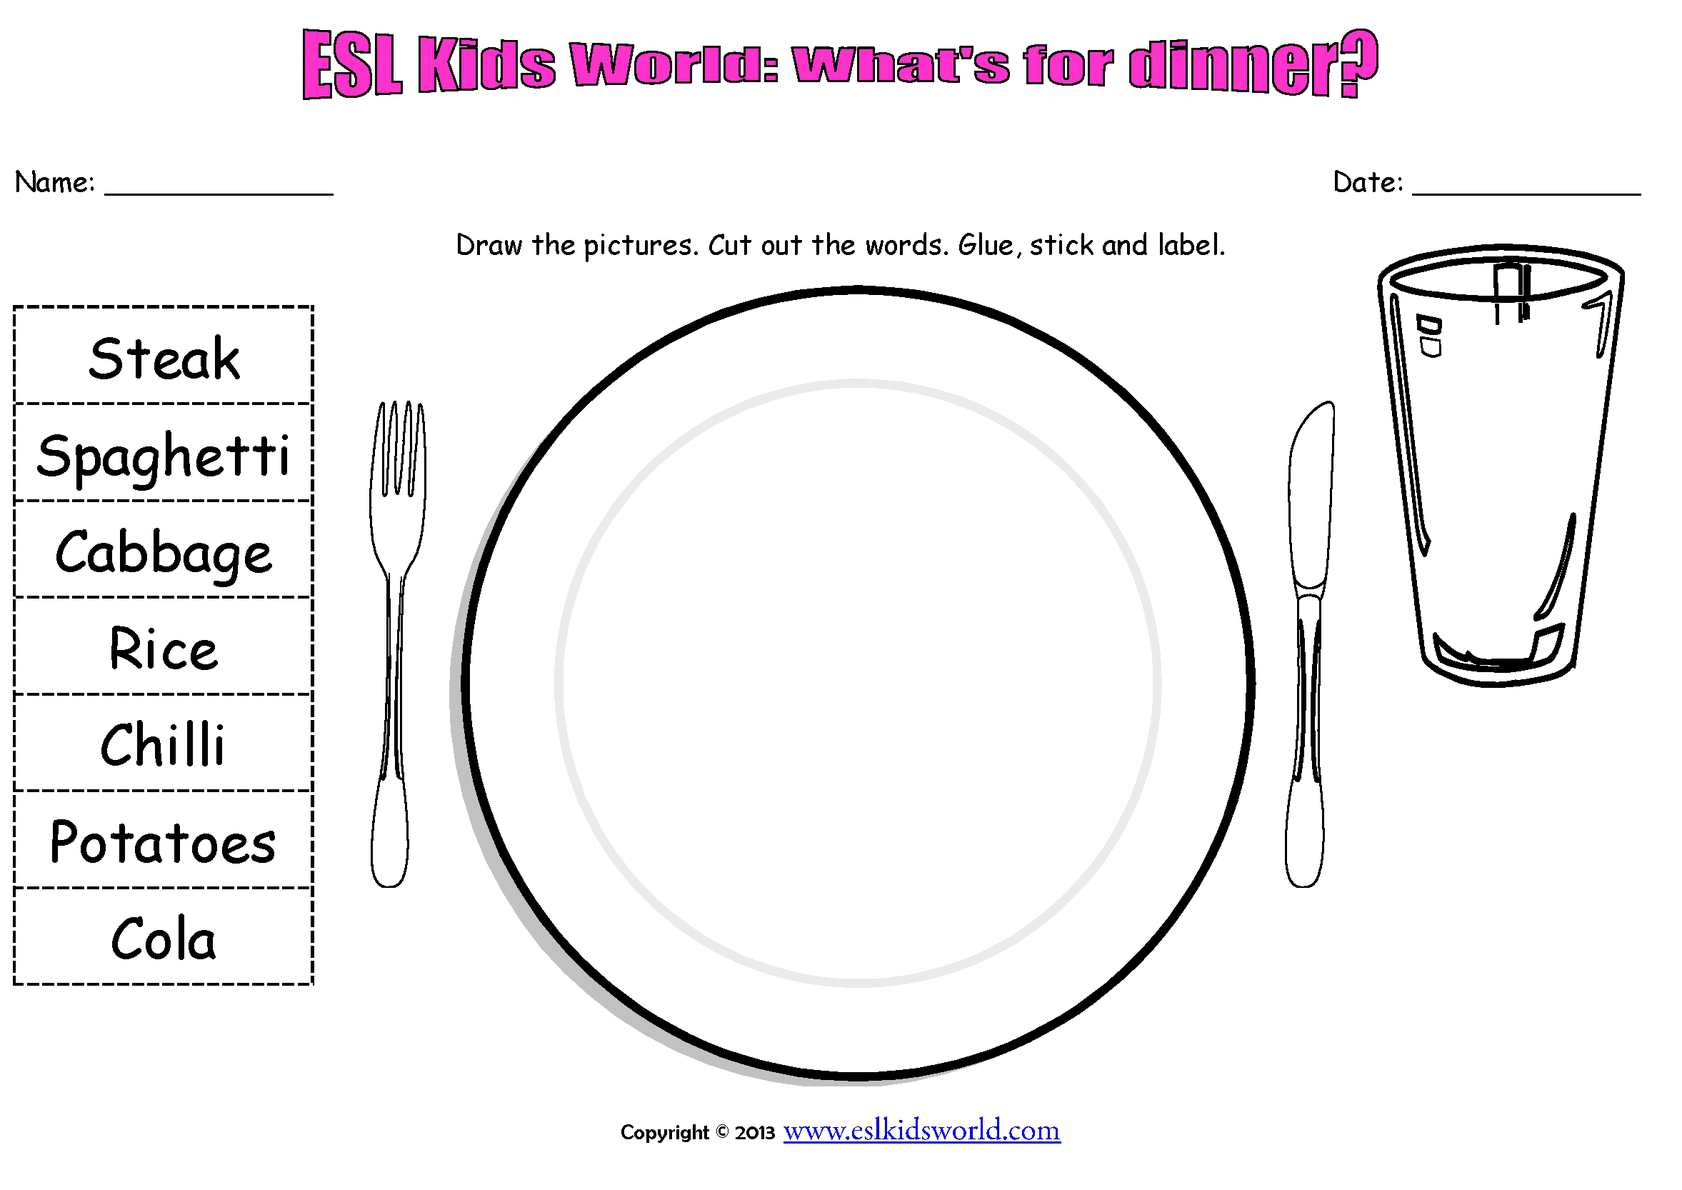 Worksheet On Plate Food